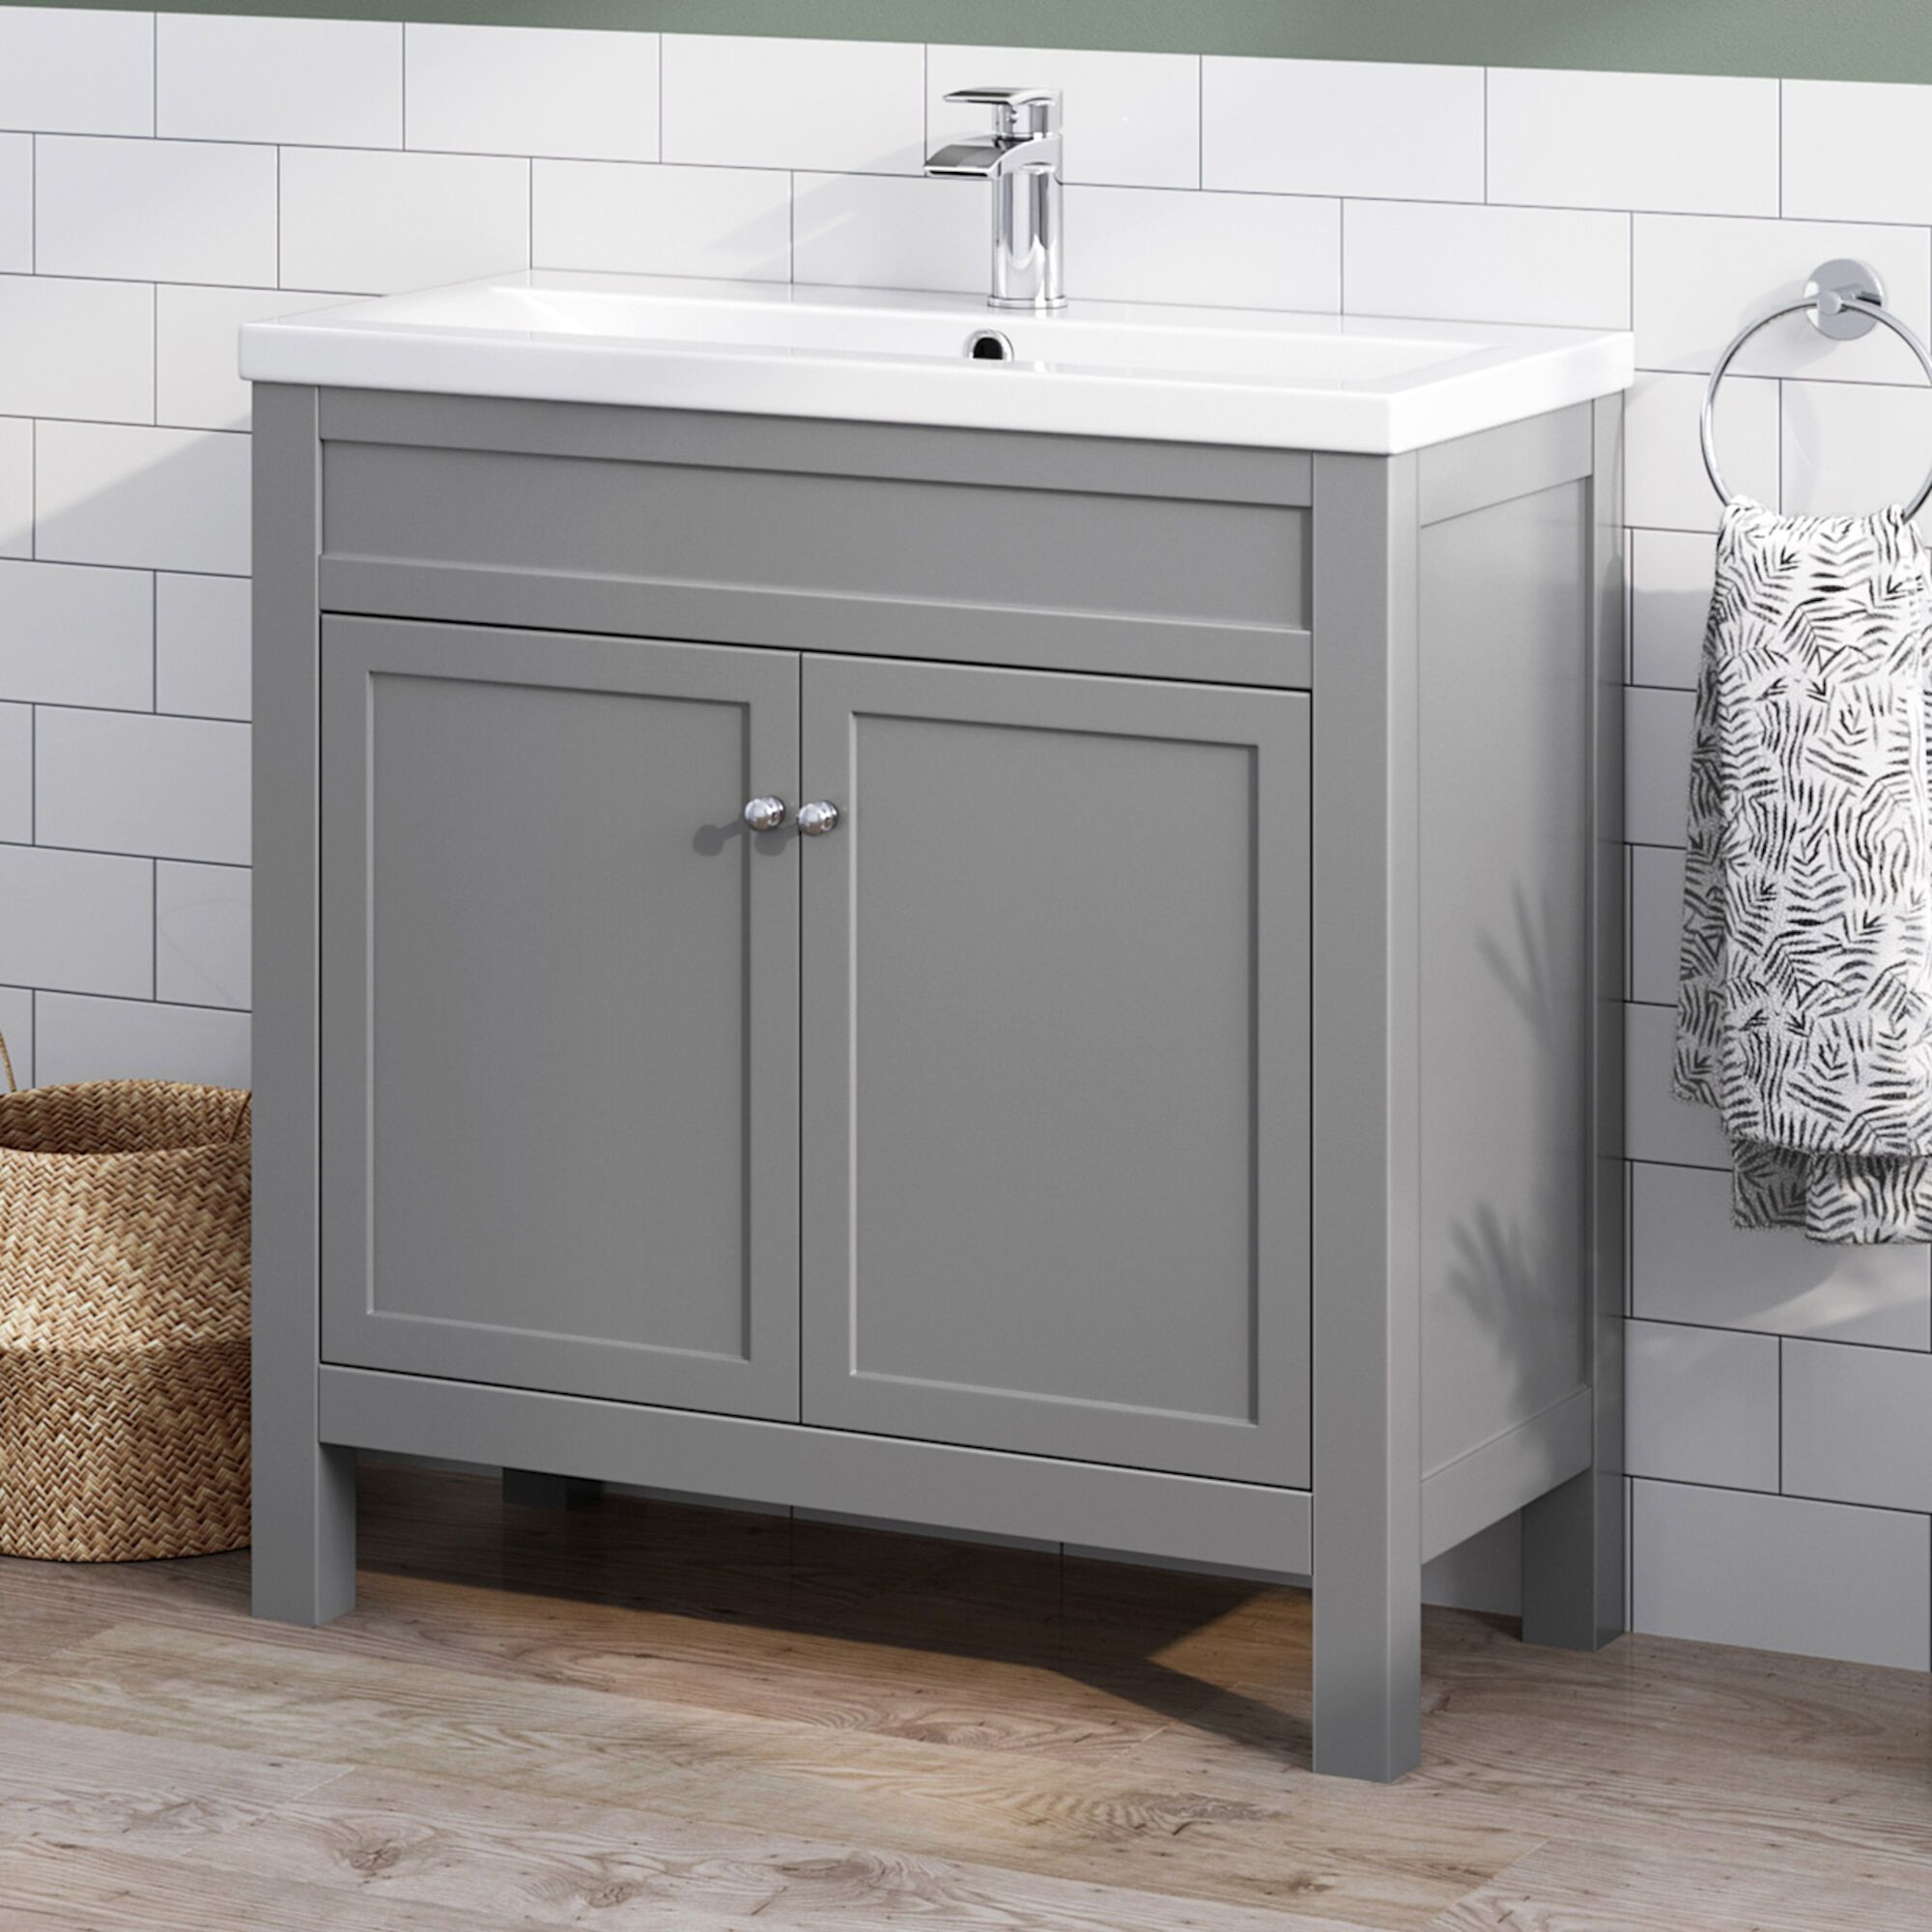 Bathroom Vanity Units Bathroom Cabinets Furniture Units Soak Com In 2020 Bathroom Vanity Units Grey Bathroom Vanity Traditional Bathroom Vanity